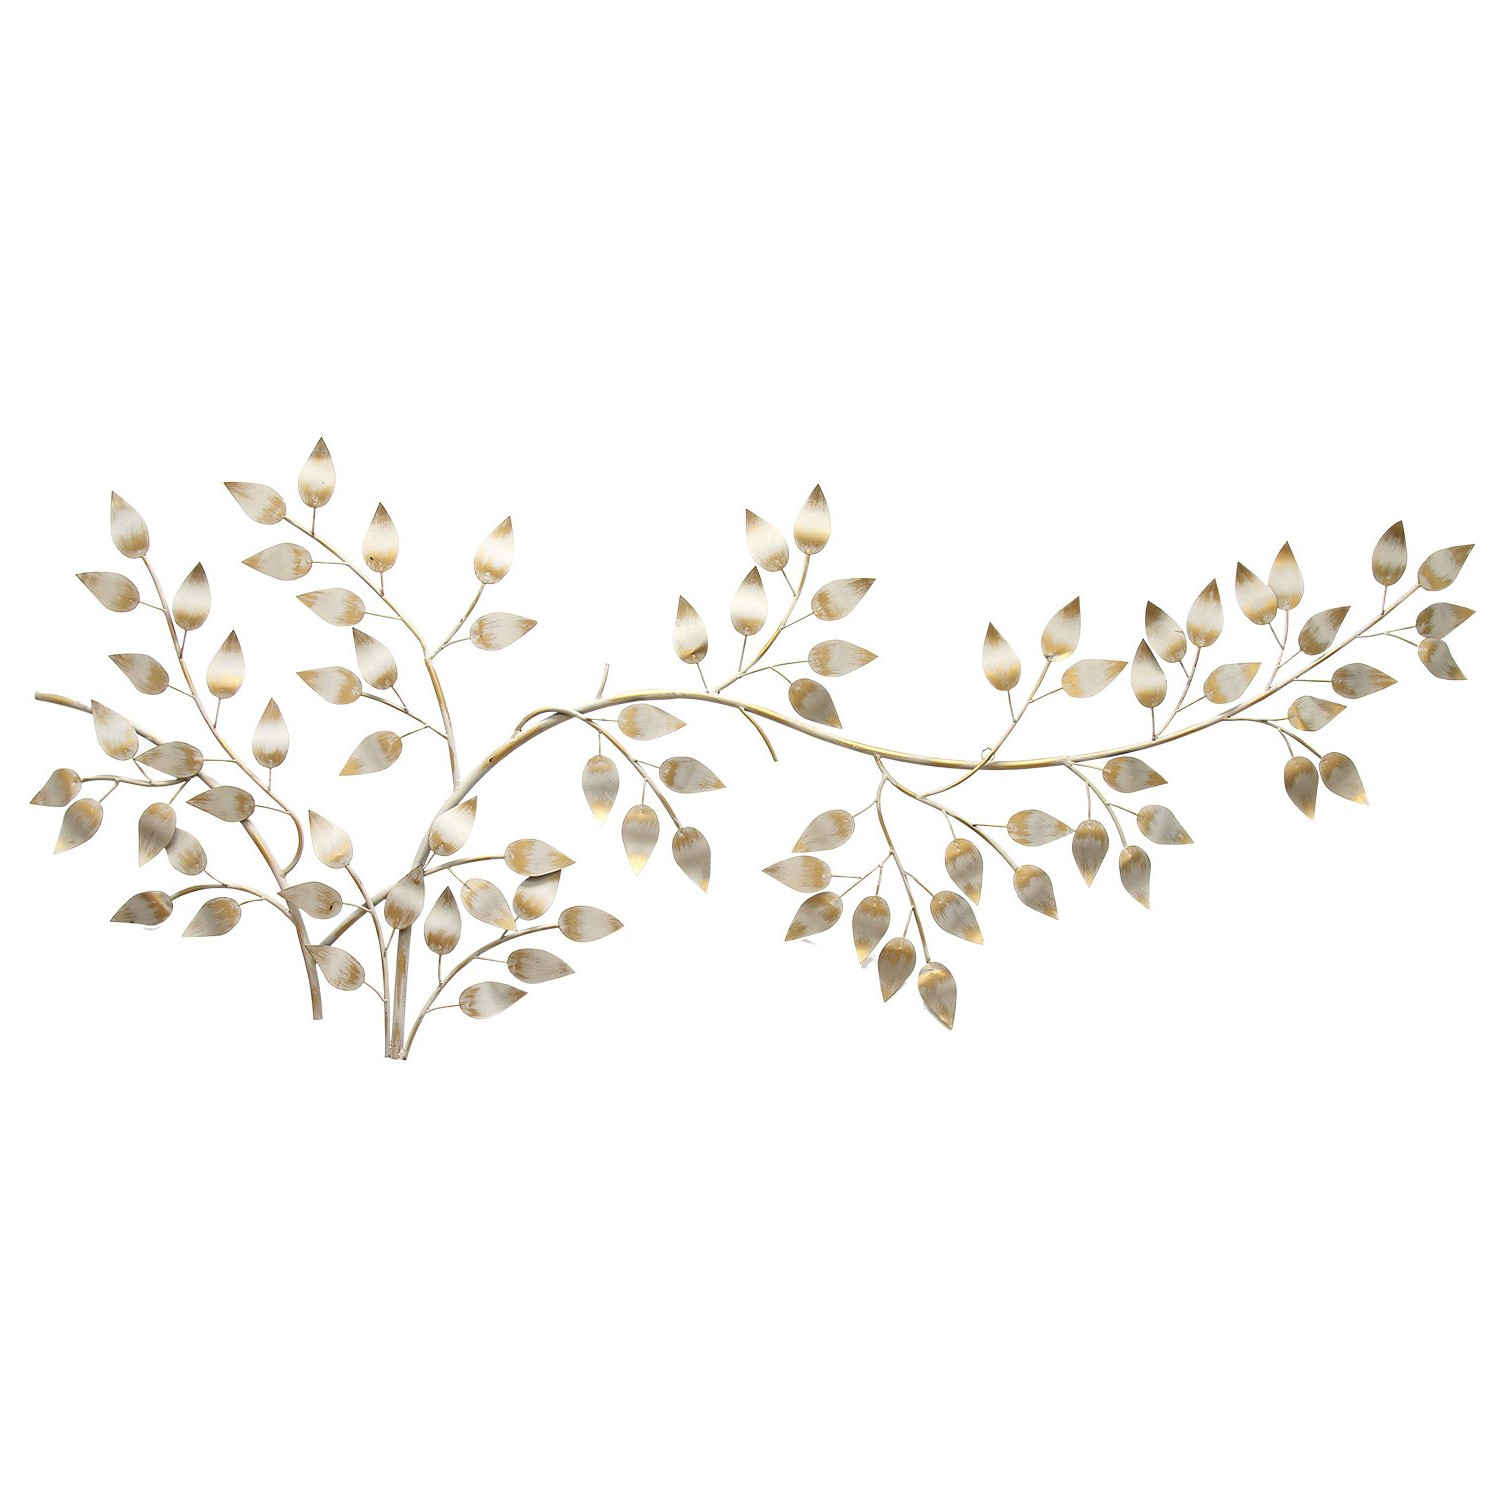 2020 Amazon: Stratton Home Décor Stratton Home Shd0106 Brushed Within Flowing Leaves Wall Decor (View 2 of 20)